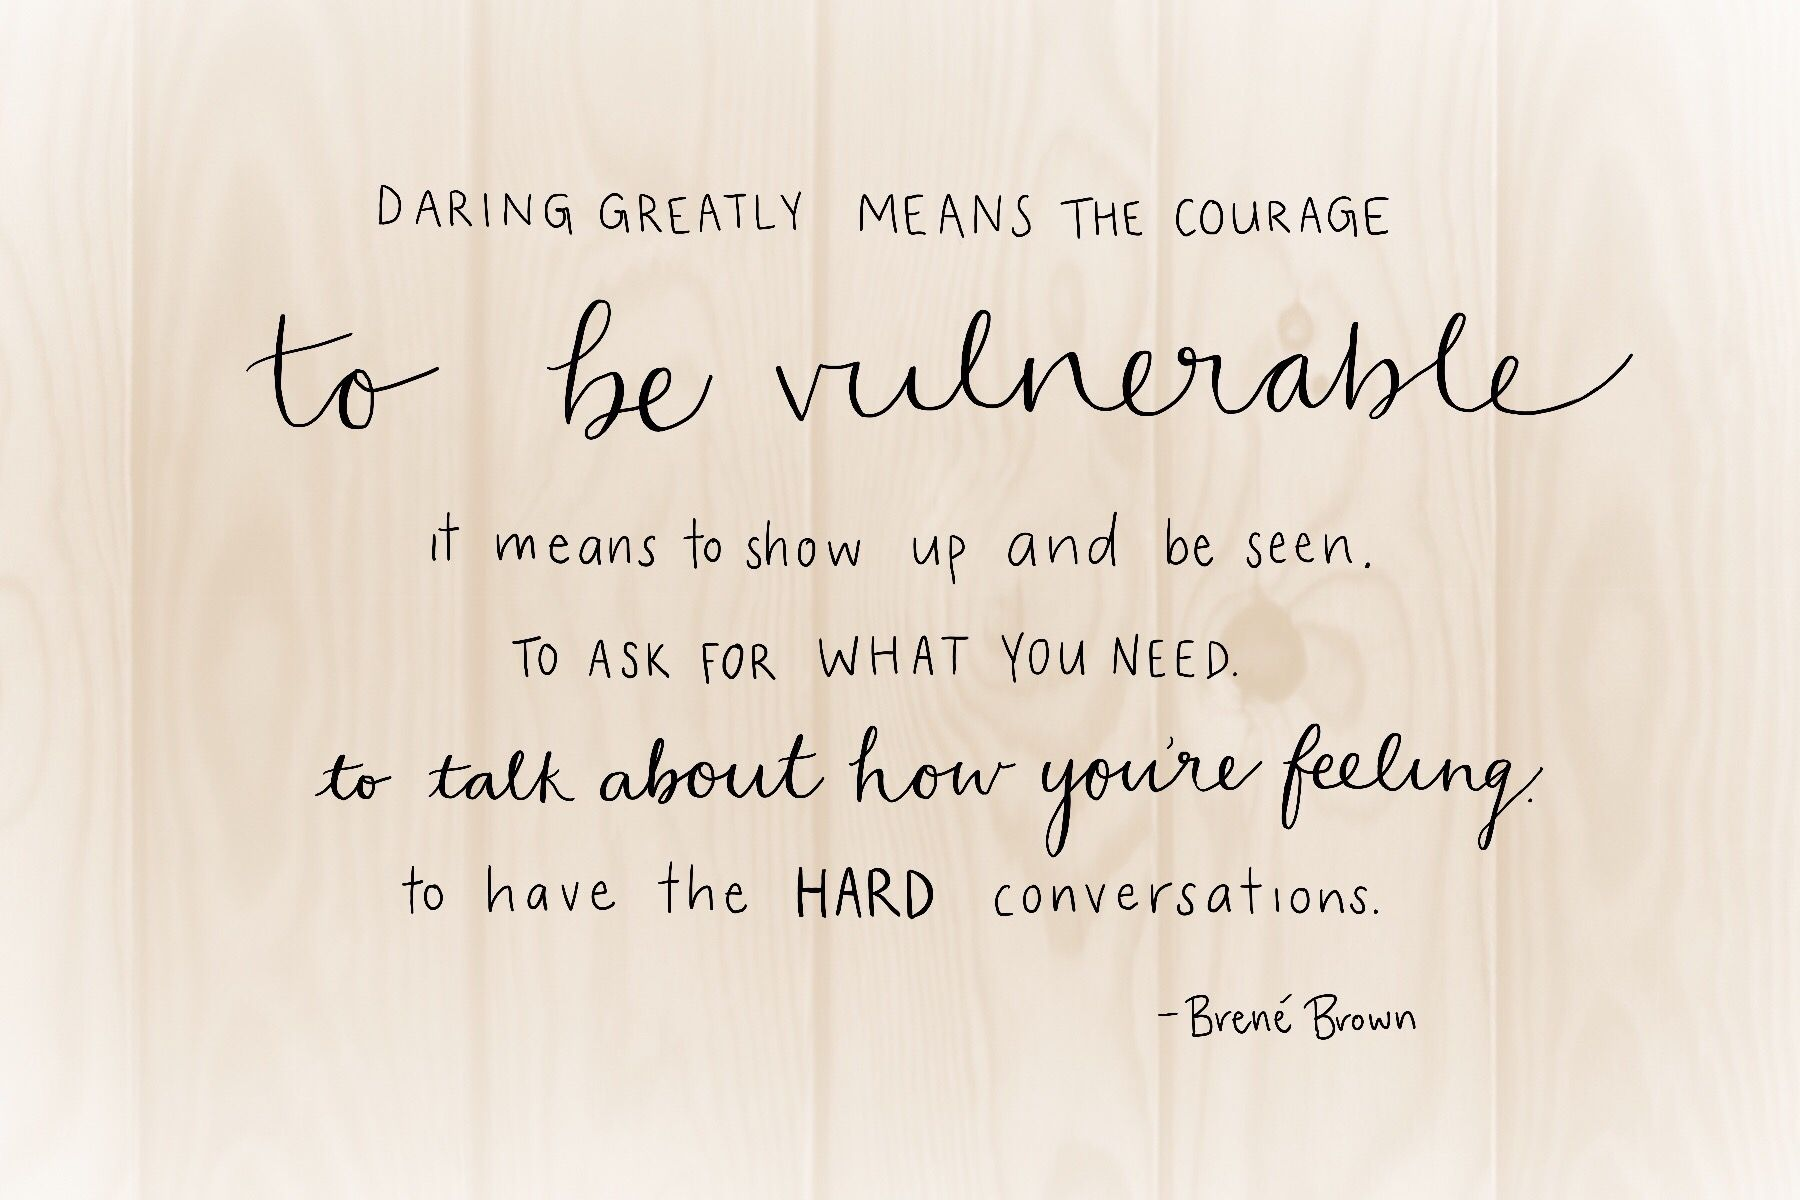 Brene Brown Quotes Daring Greatly Means The Courage To Be Vulnerable Brene Brown